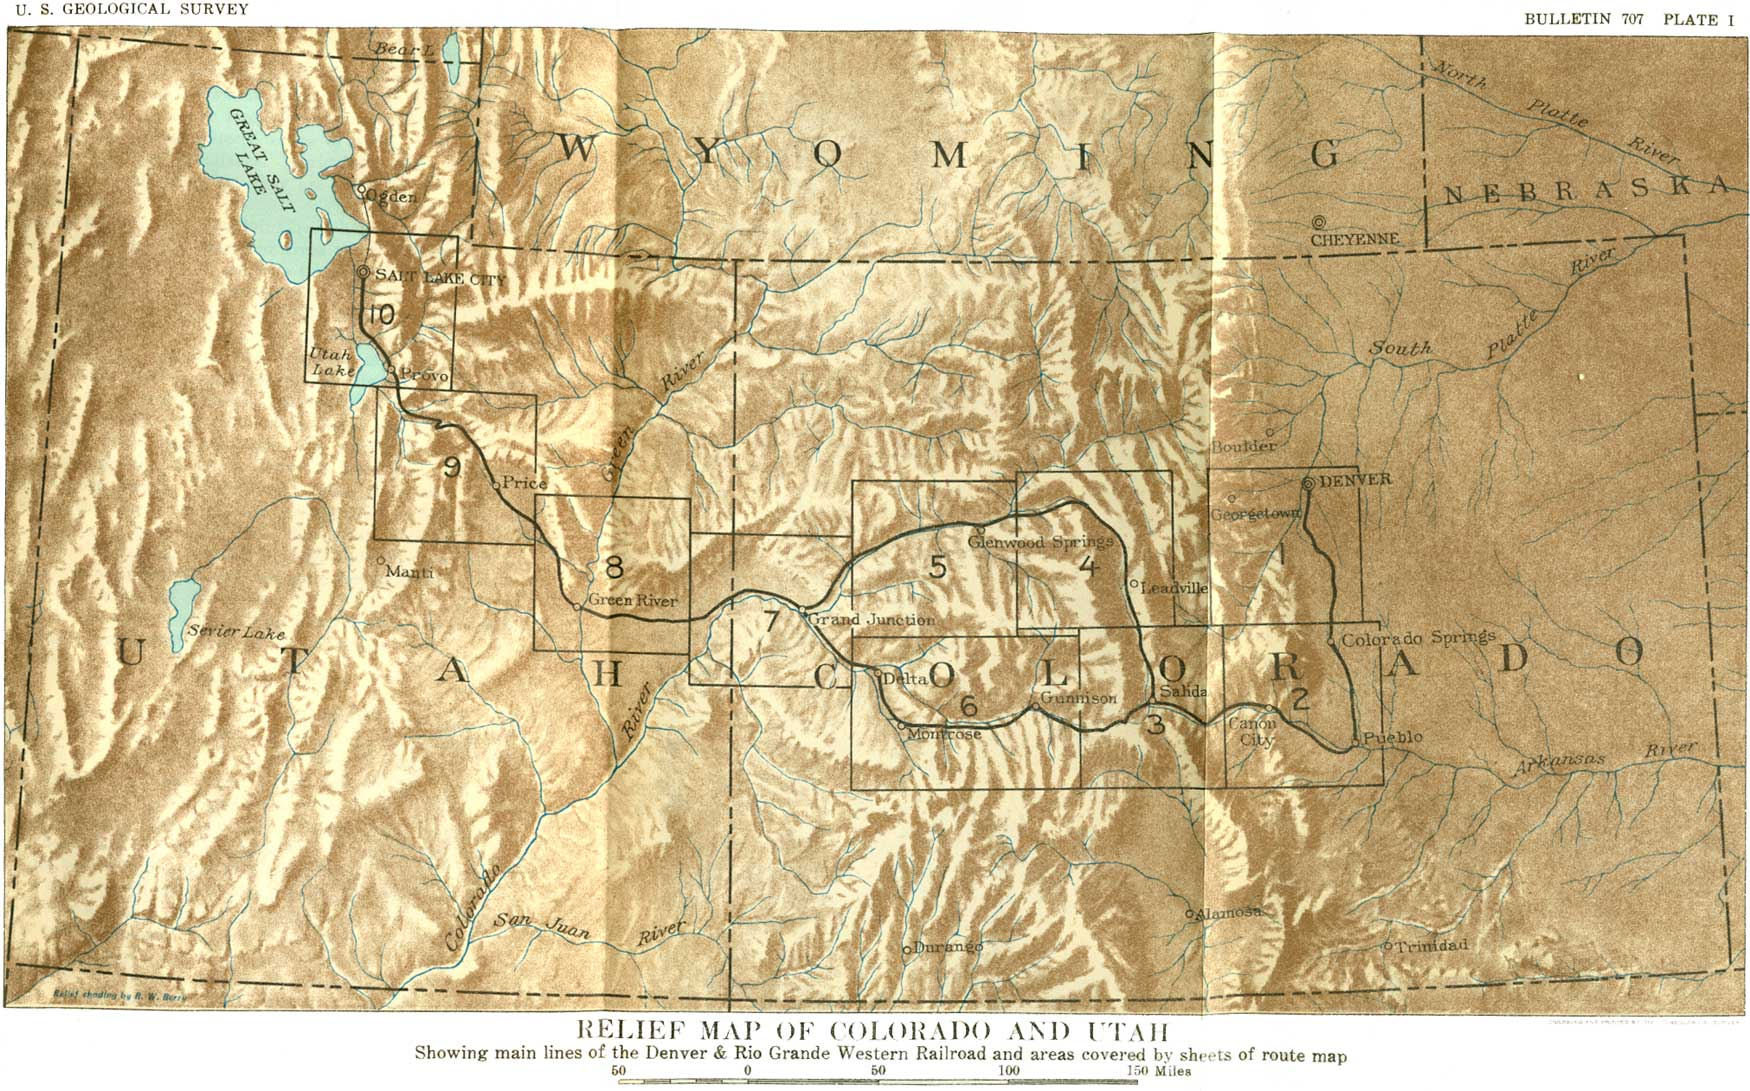 I Relief Map Of Colorado And Part Of Utah Showing Main Lines Of The Denver Rio Grande Western Railroad And Areas Covered By Sheets Of Route Map